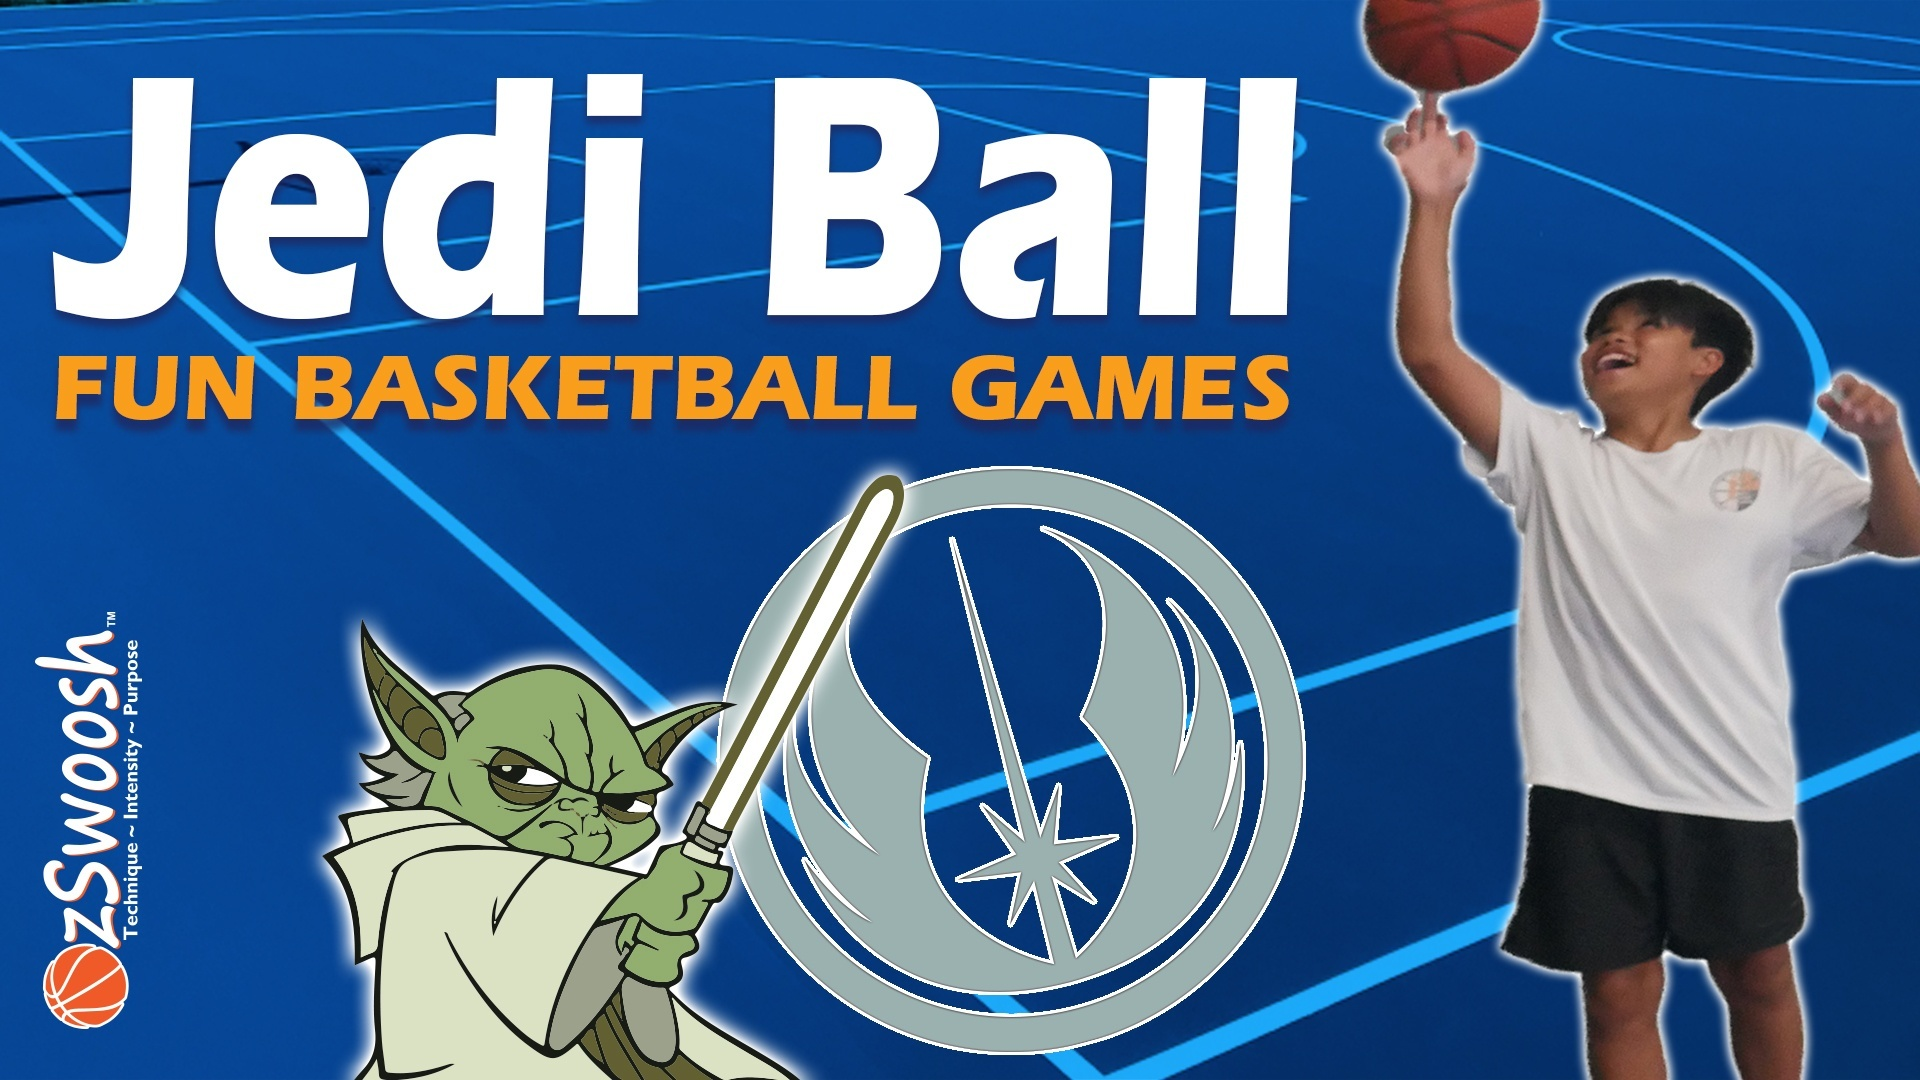 Fun Youth Basketball Drills For Kids - Jedi Ball (Passing game)